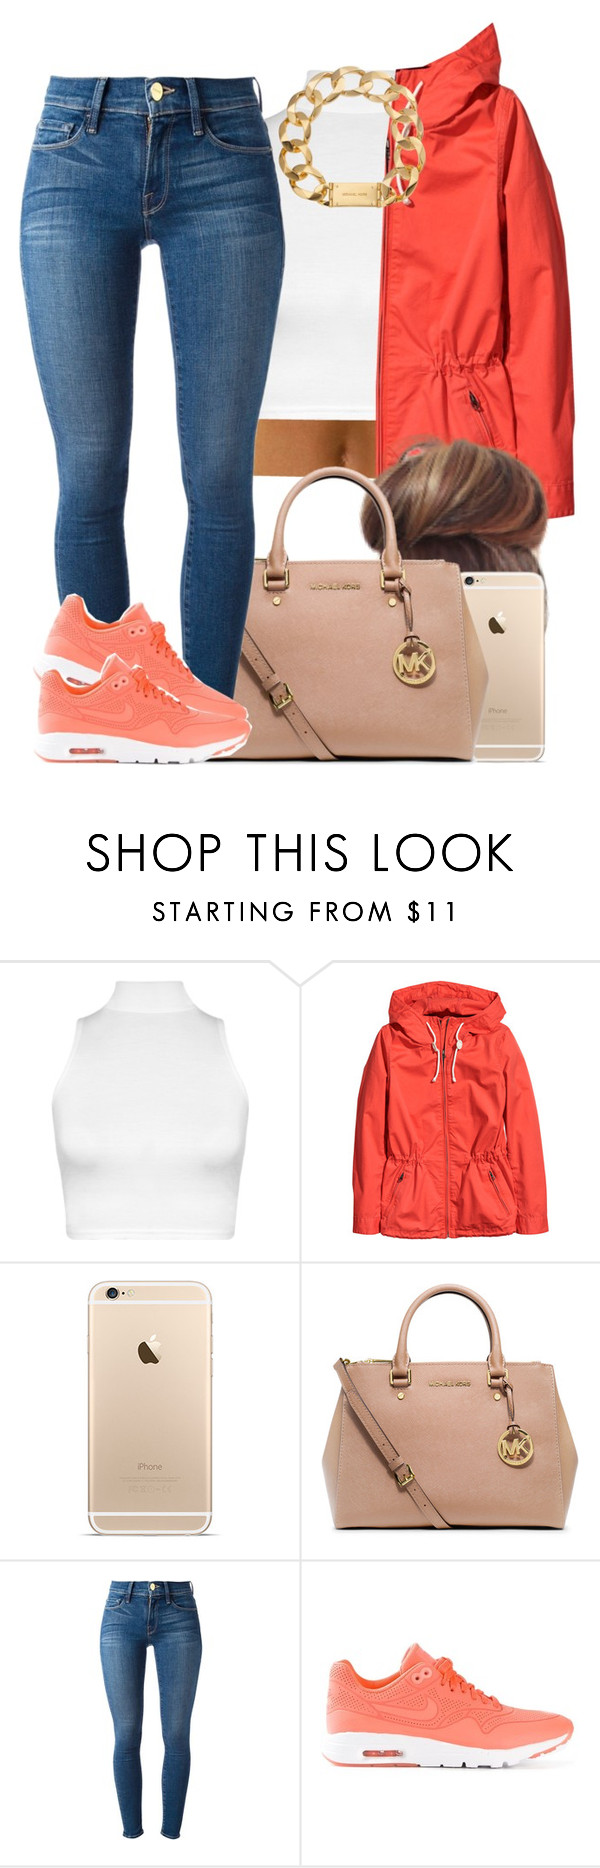 """""""When you lowkey miss fall..."""" by livelifefreelyy ❤ liked on Polyvore featuring moda, WearAll, H&M, MICHAEL Michael Kors, Frame Denim, NIKE y Michael Kors"""